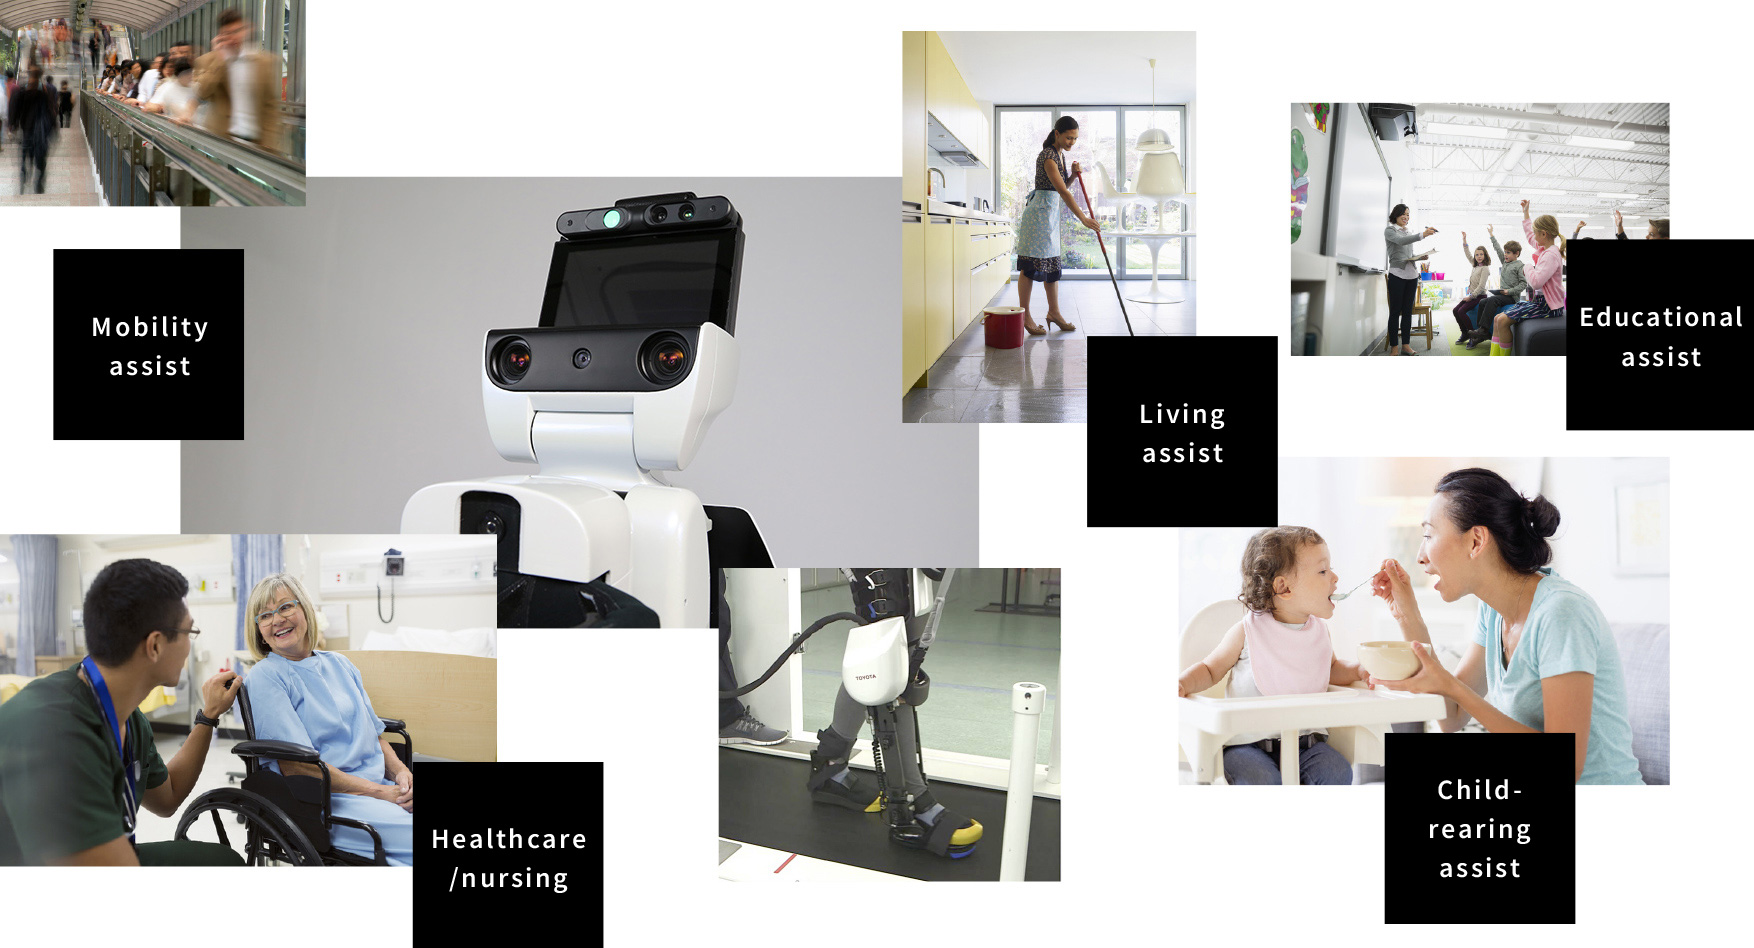 PARTNER ROBOT|FIRST CONCEPT Smiling faces, new encounters and the start of a dream: Innovation looking beyond mobility